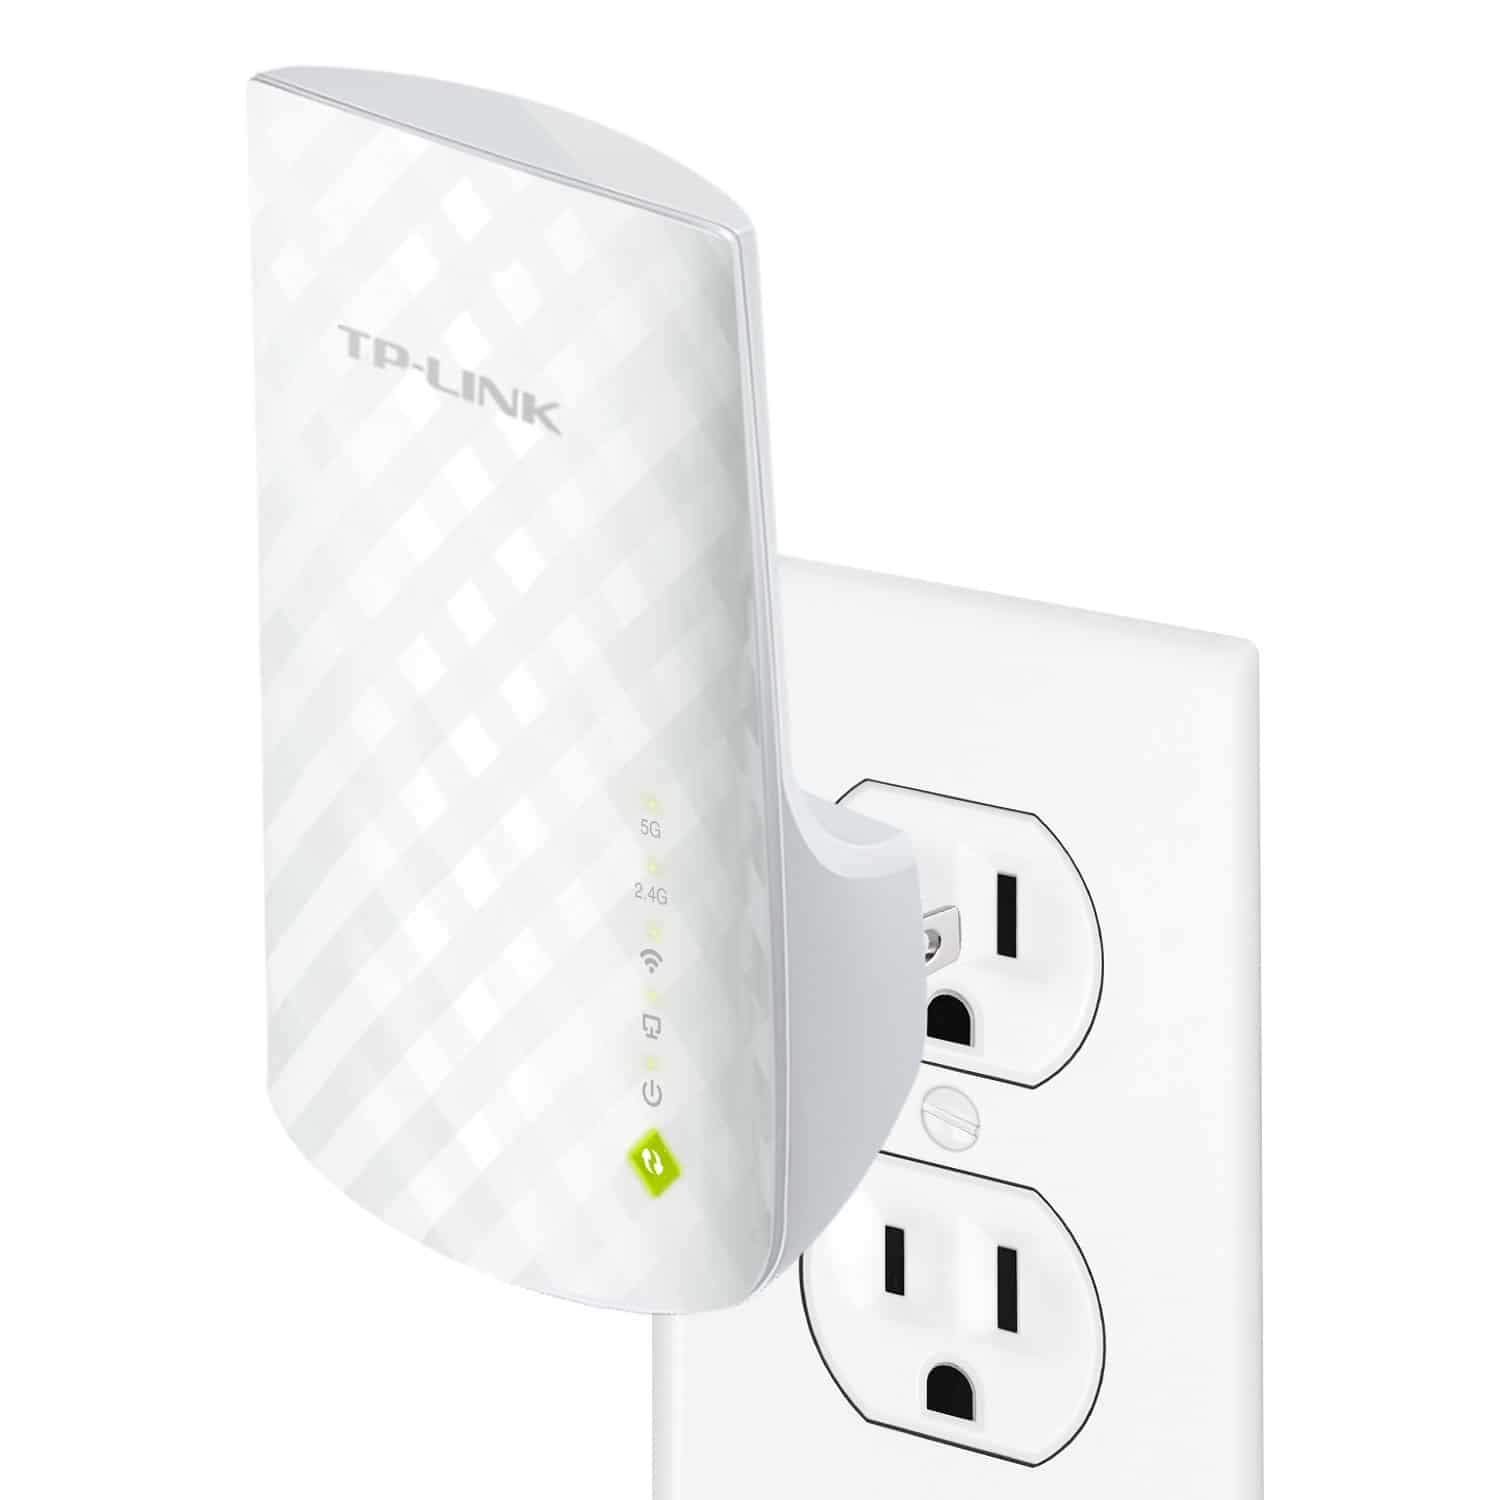 TP-Link AC750 Dual Band WiFi Range Extender